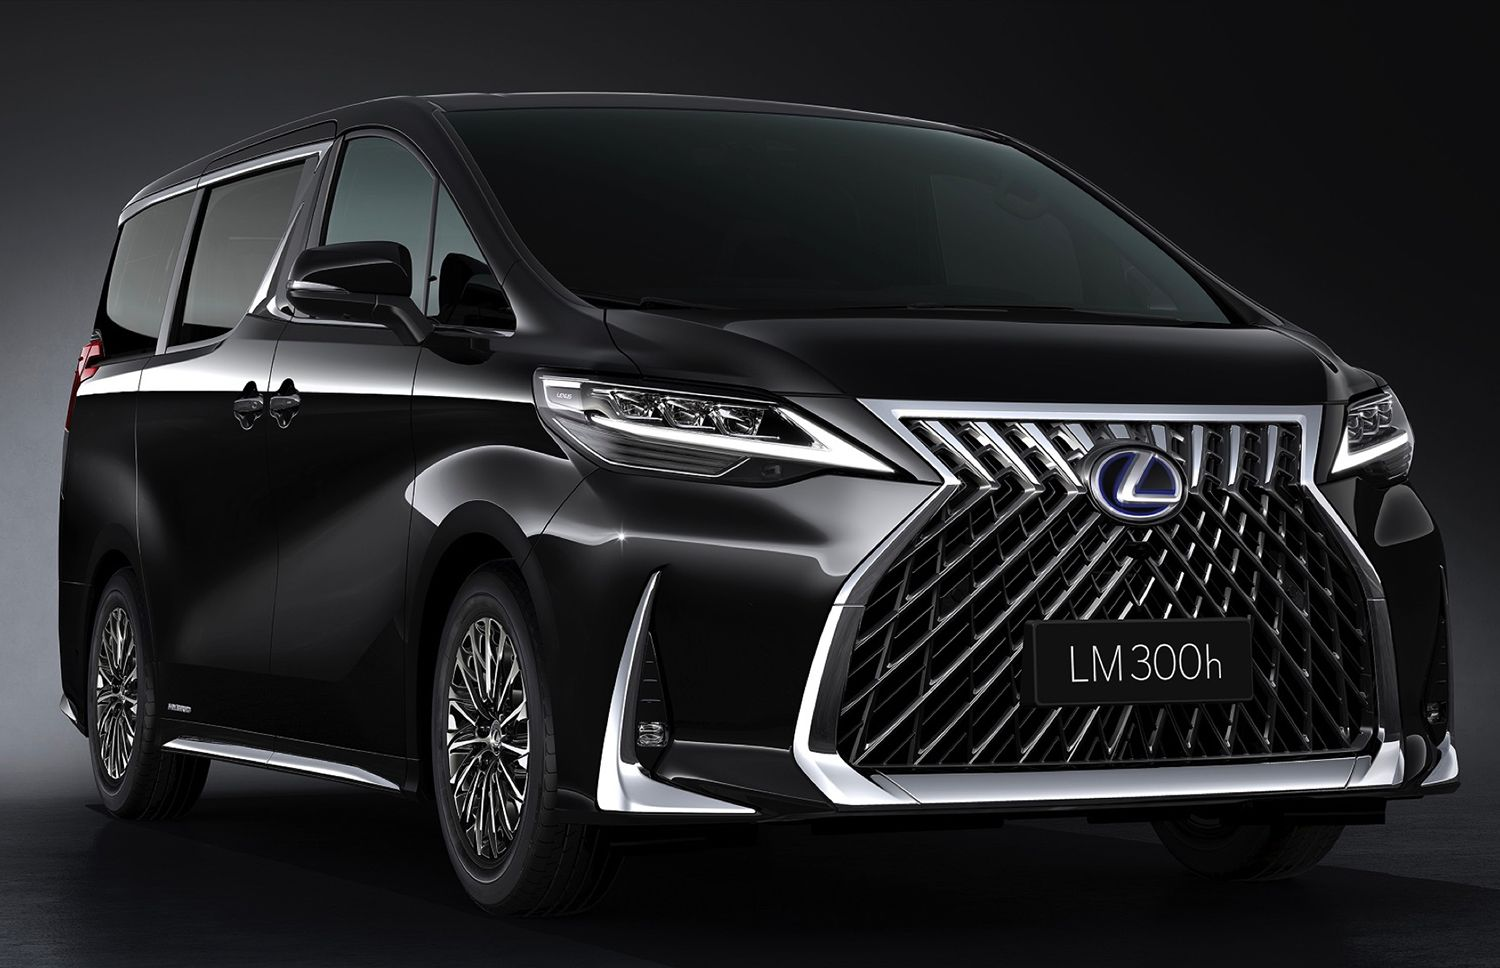 2020 Lexus Lm300h Thai Prices And Specs In 2020 Luxury Van Lexus Mini Van